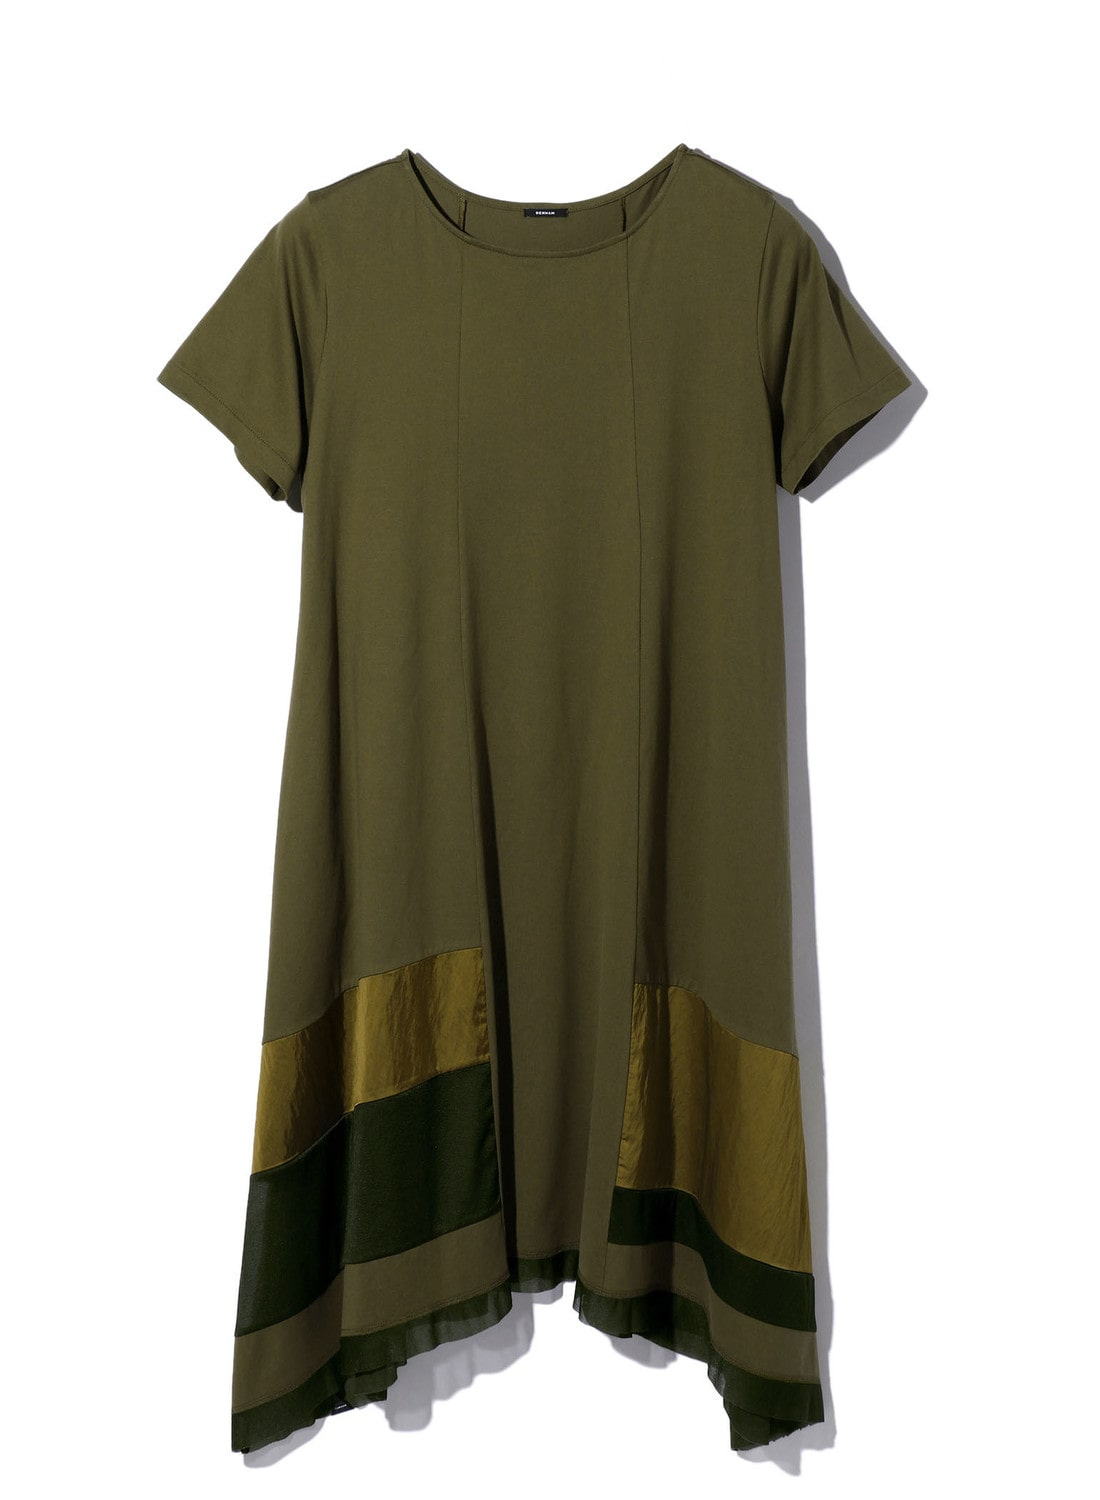 【日本限定】ALKMAAR CUT DRESS